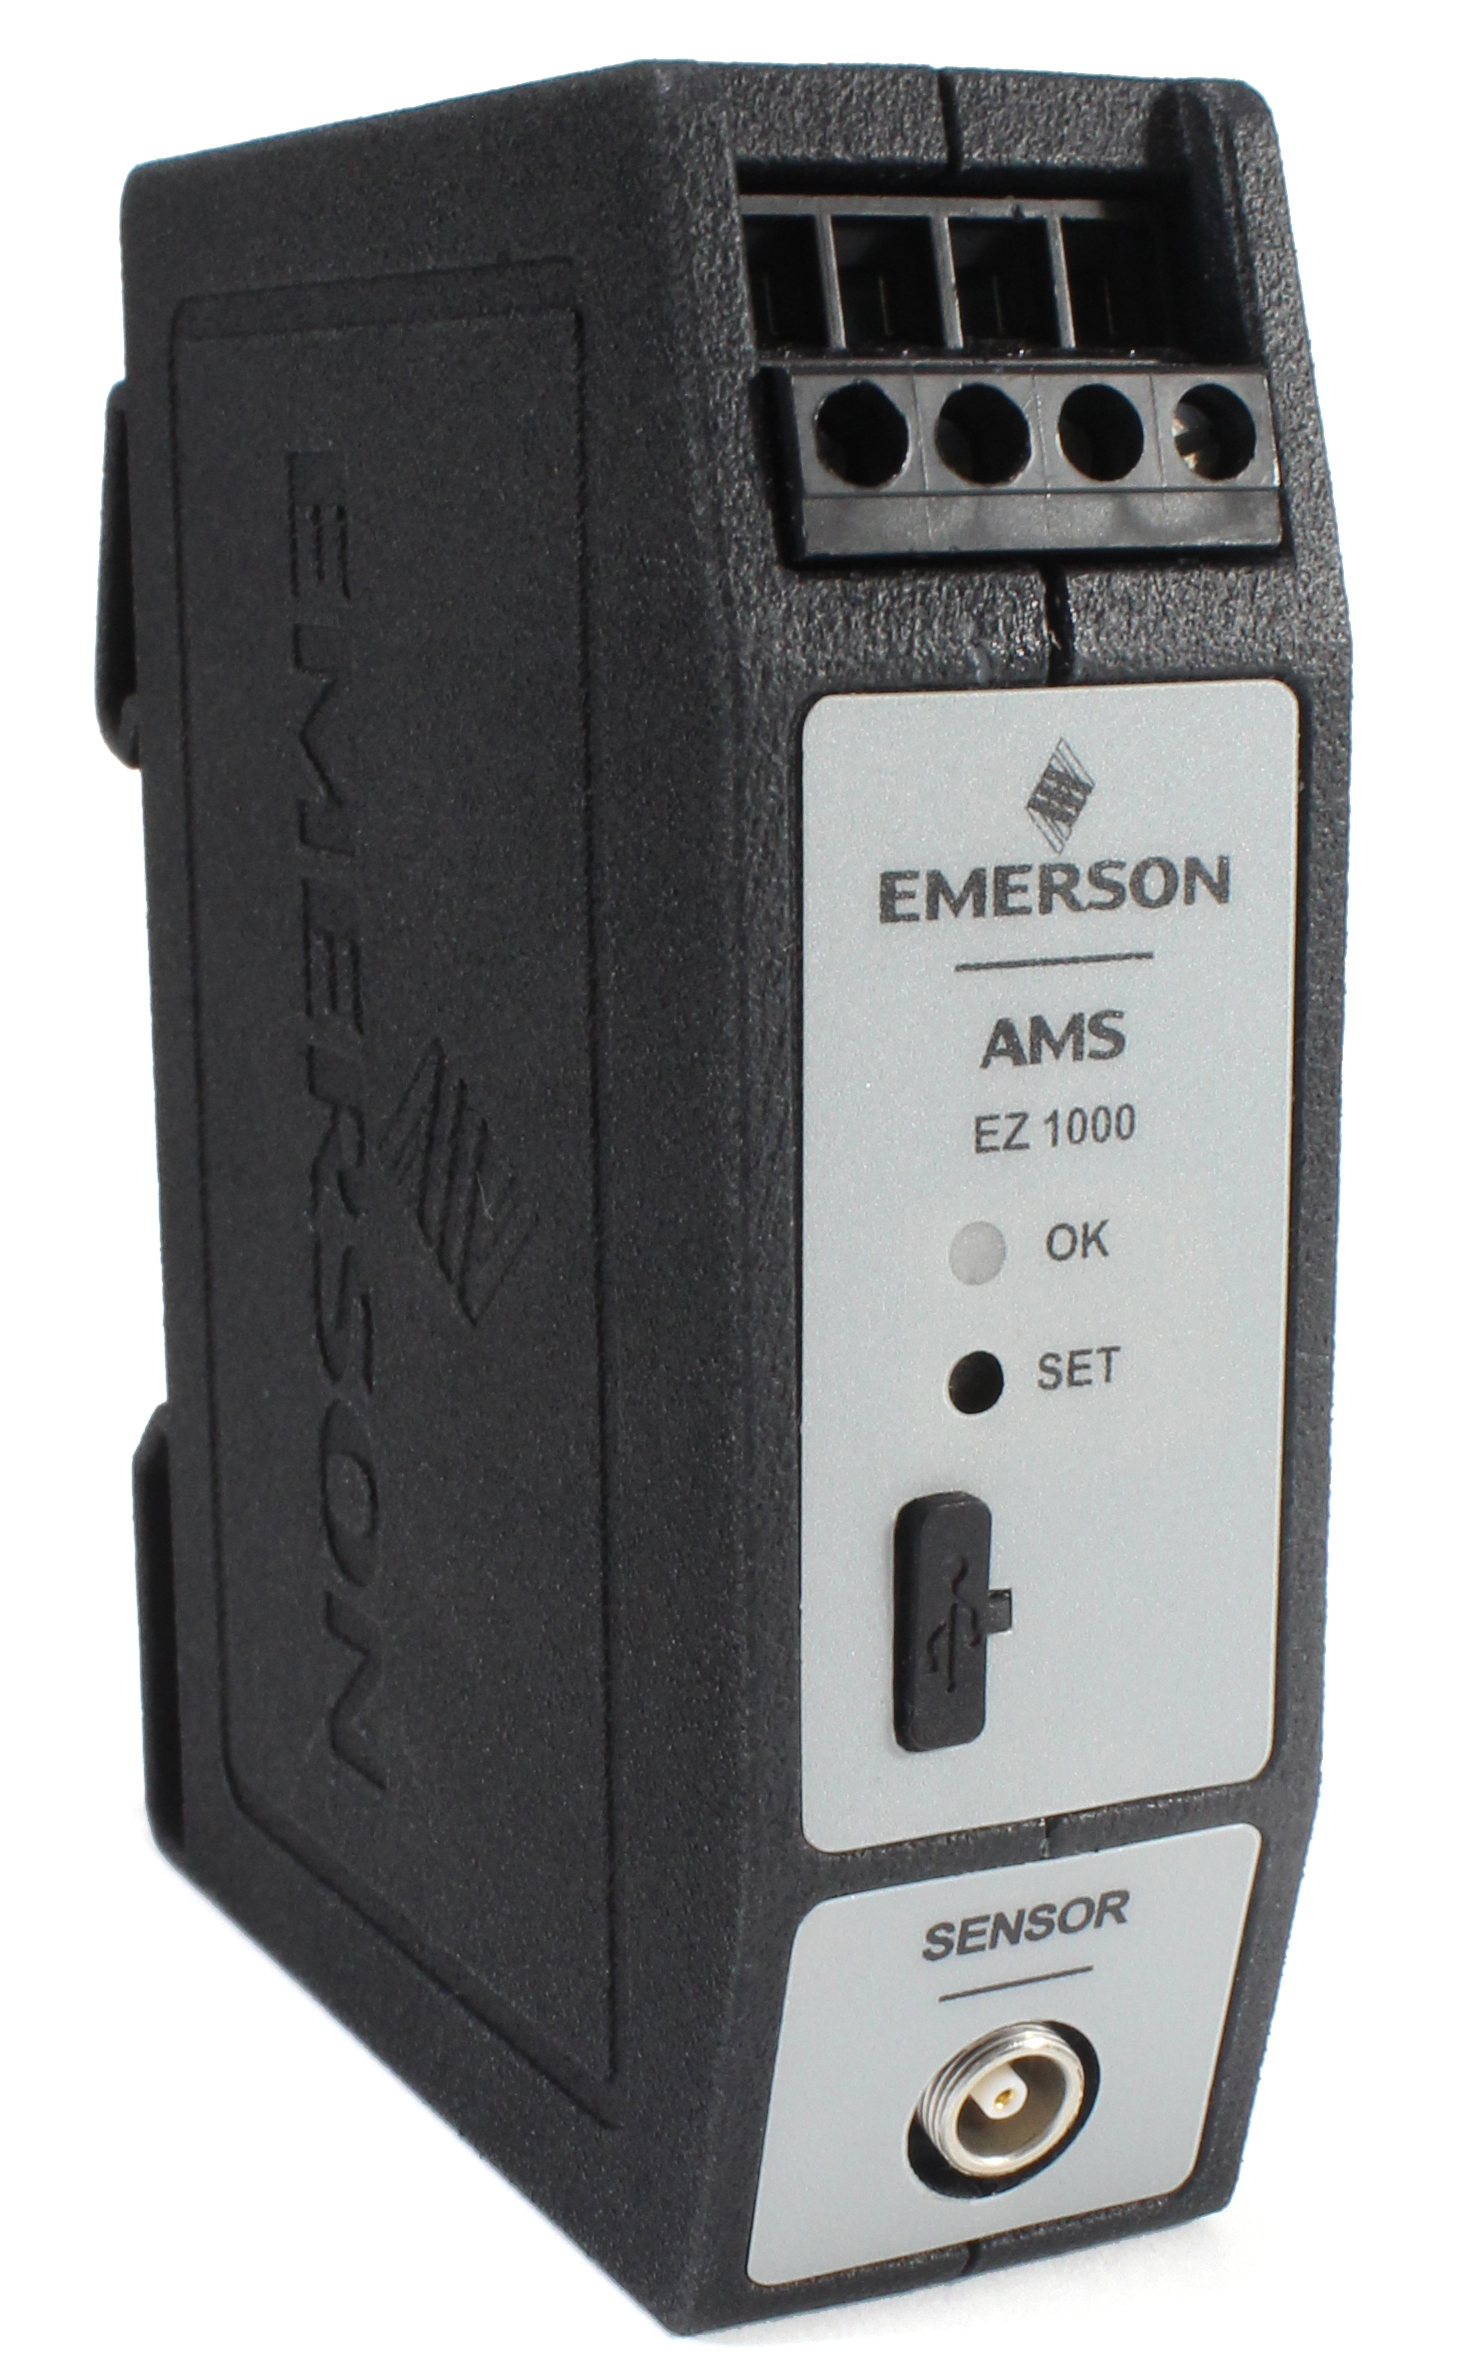 AMS EZ 1000 offers in-the-field calibration - Engineer News